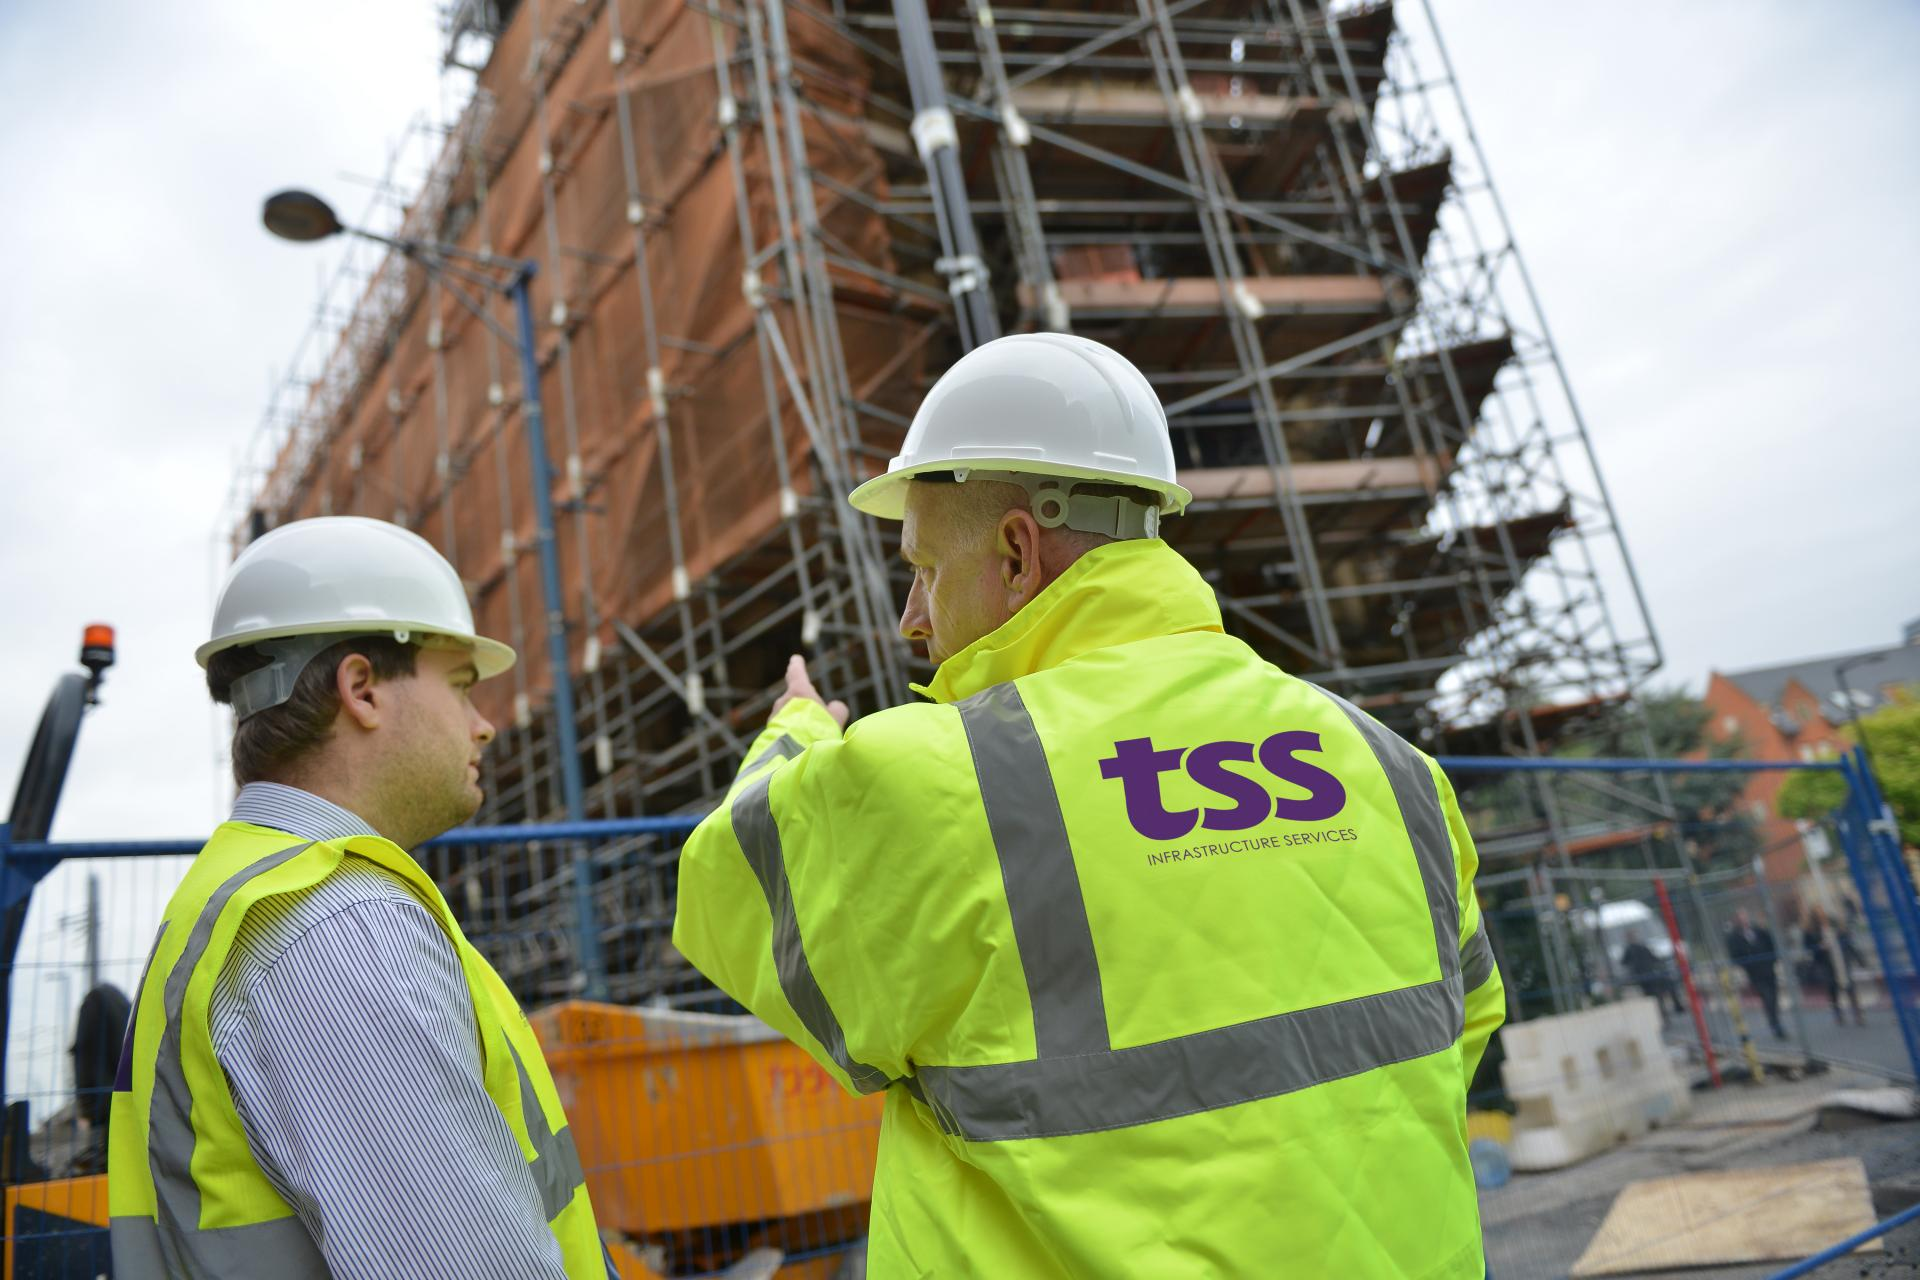 TSS staff on-site at a construction job